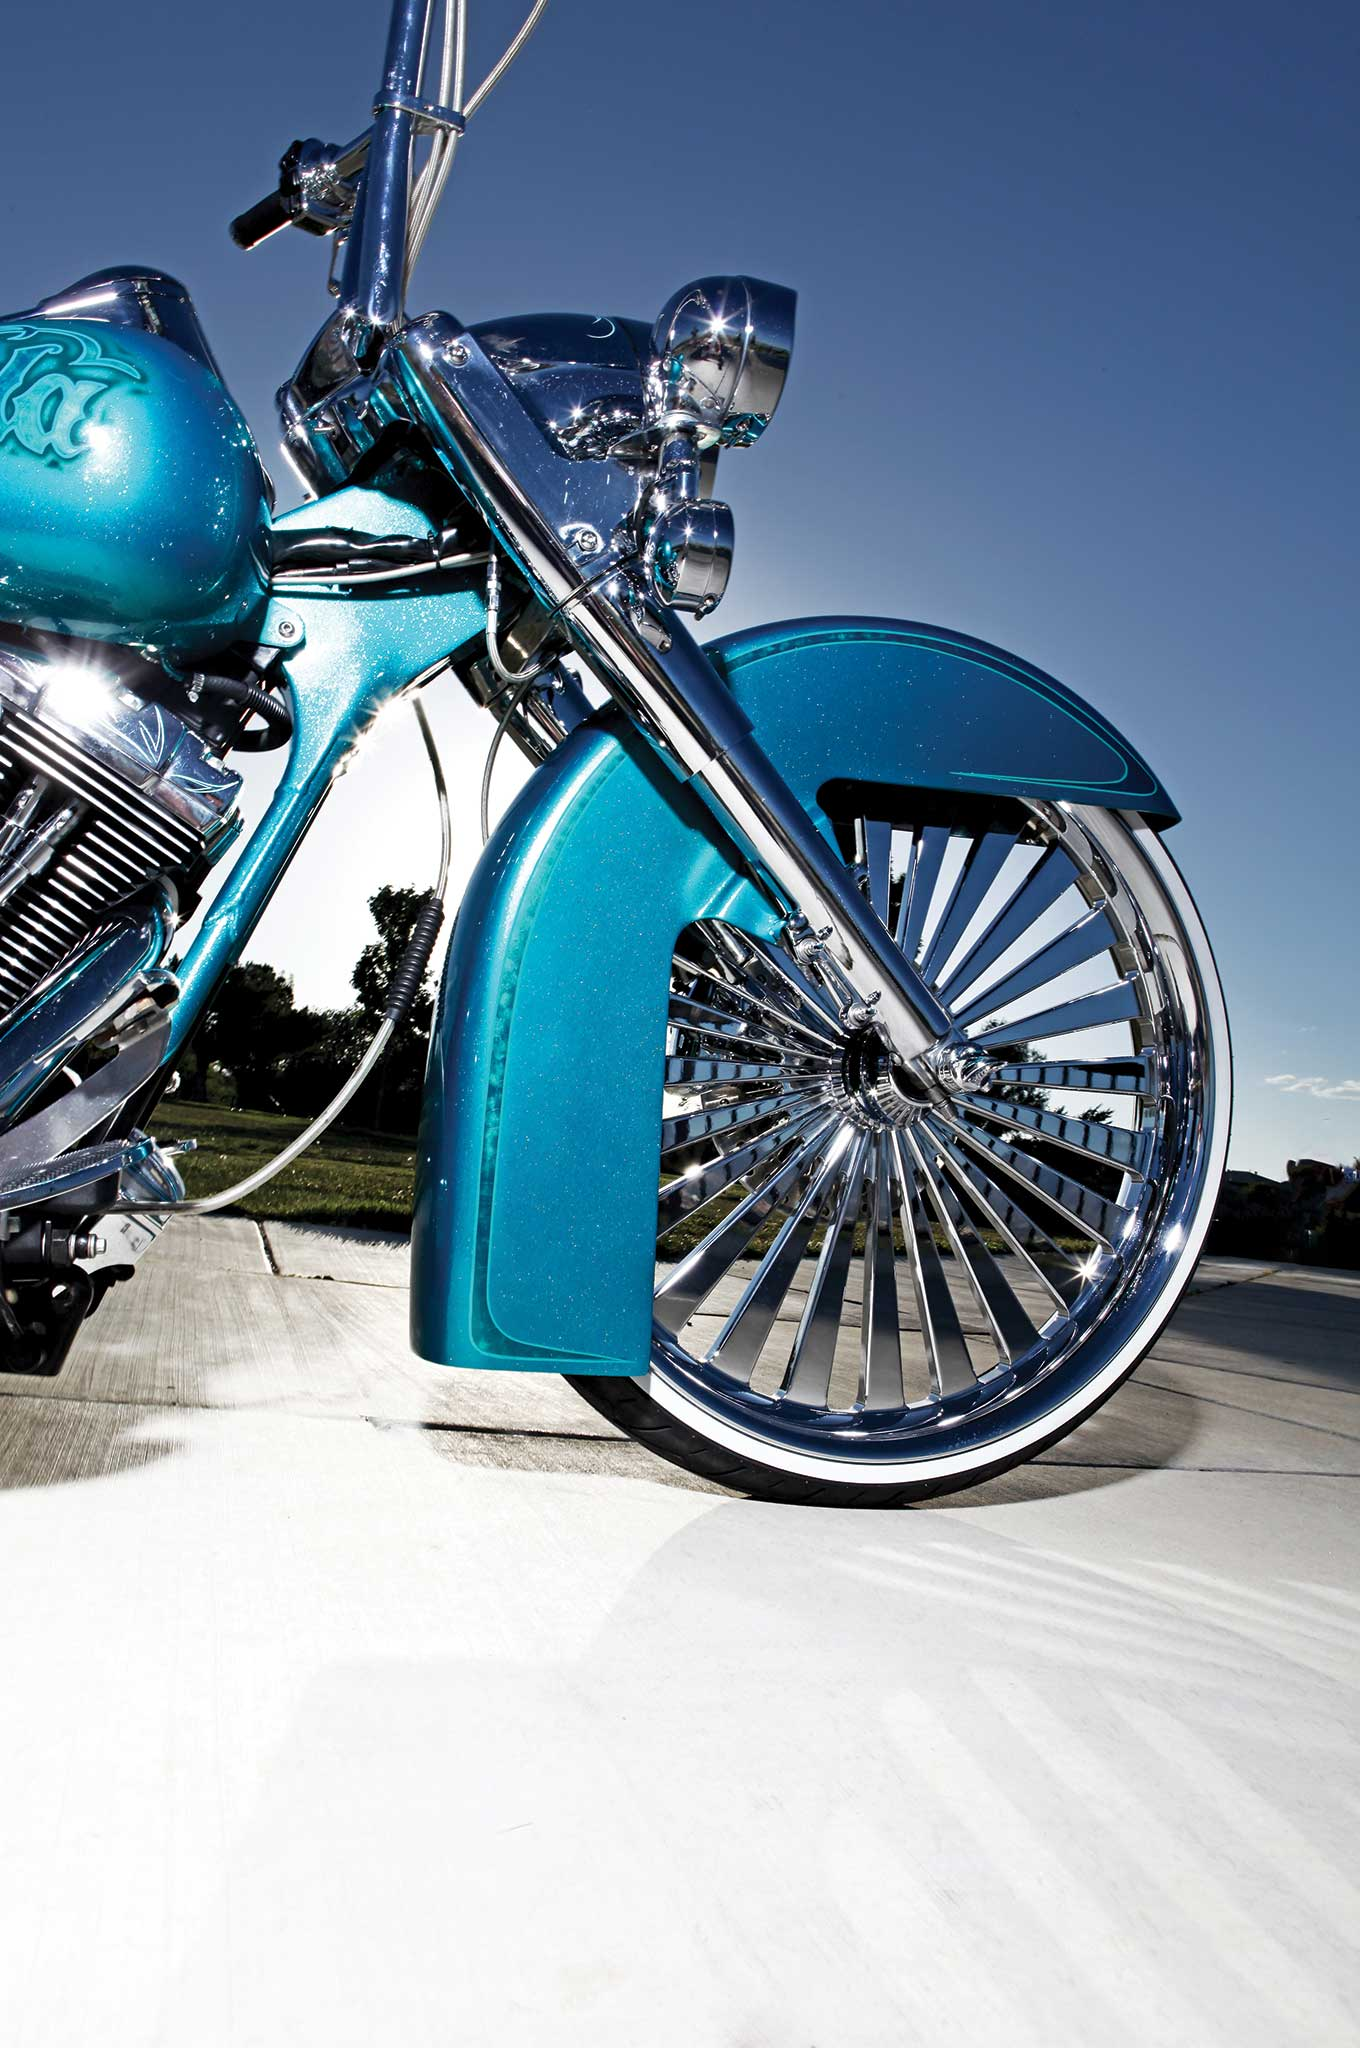 Air Bags Suspension >> 2004 Harley Davidson Road King - King of the Road - Lowrider